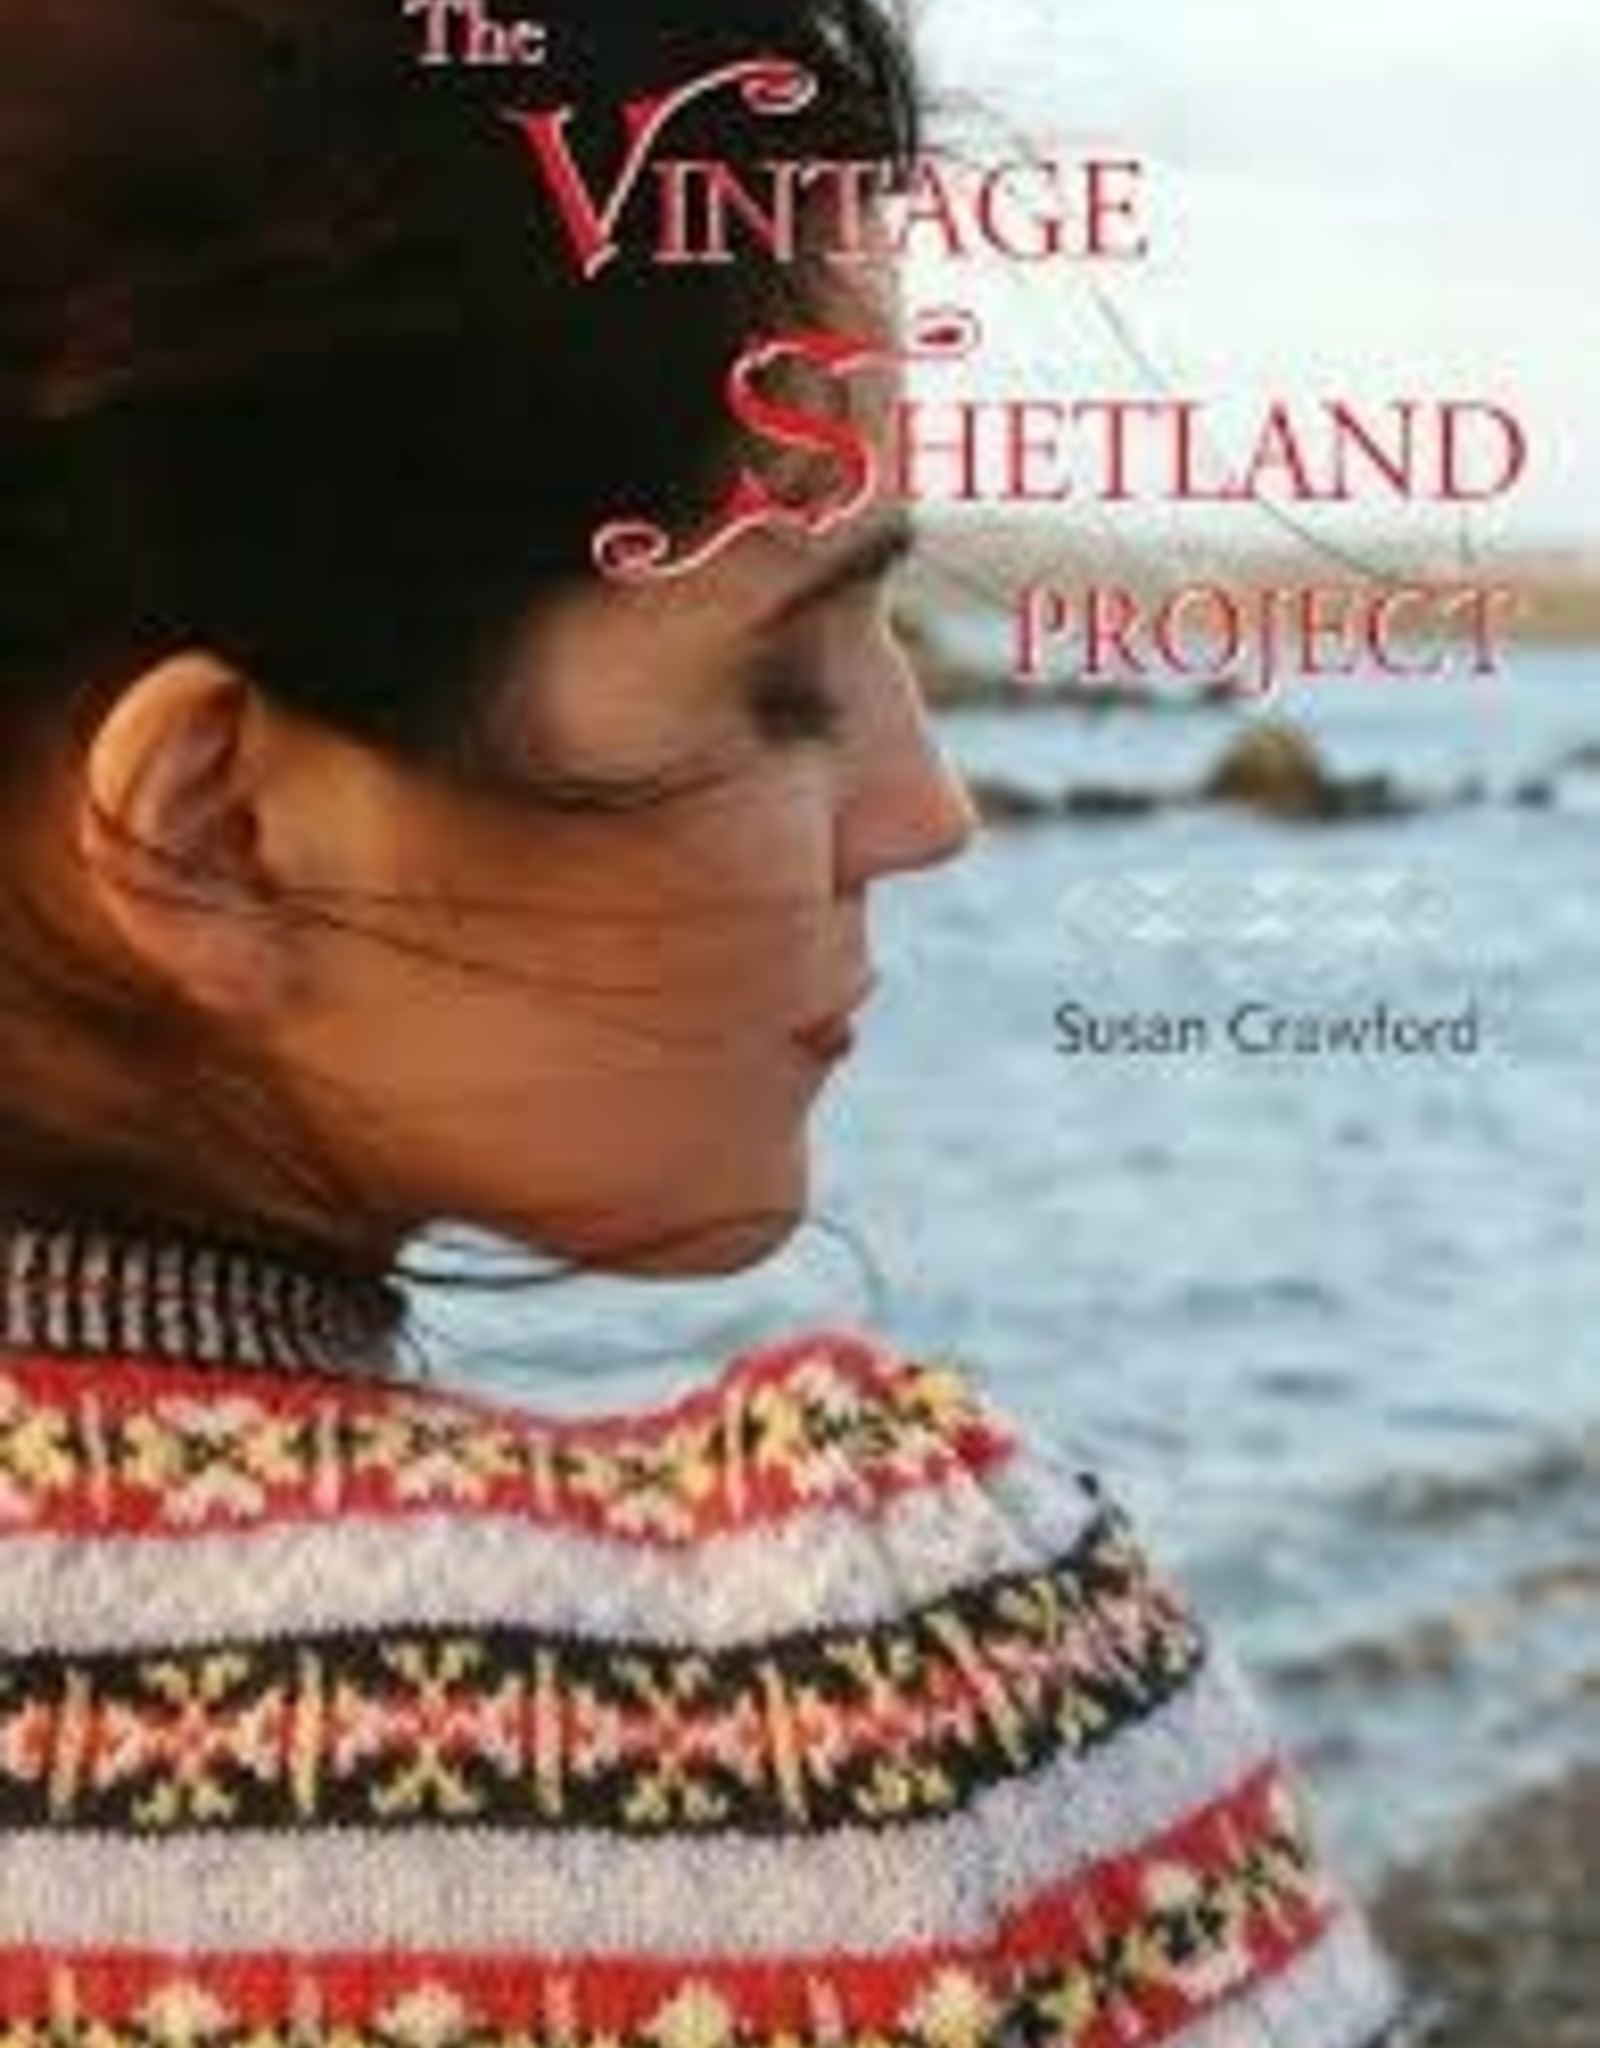 Book - The Vintage Shetland Project by Susan Crawford